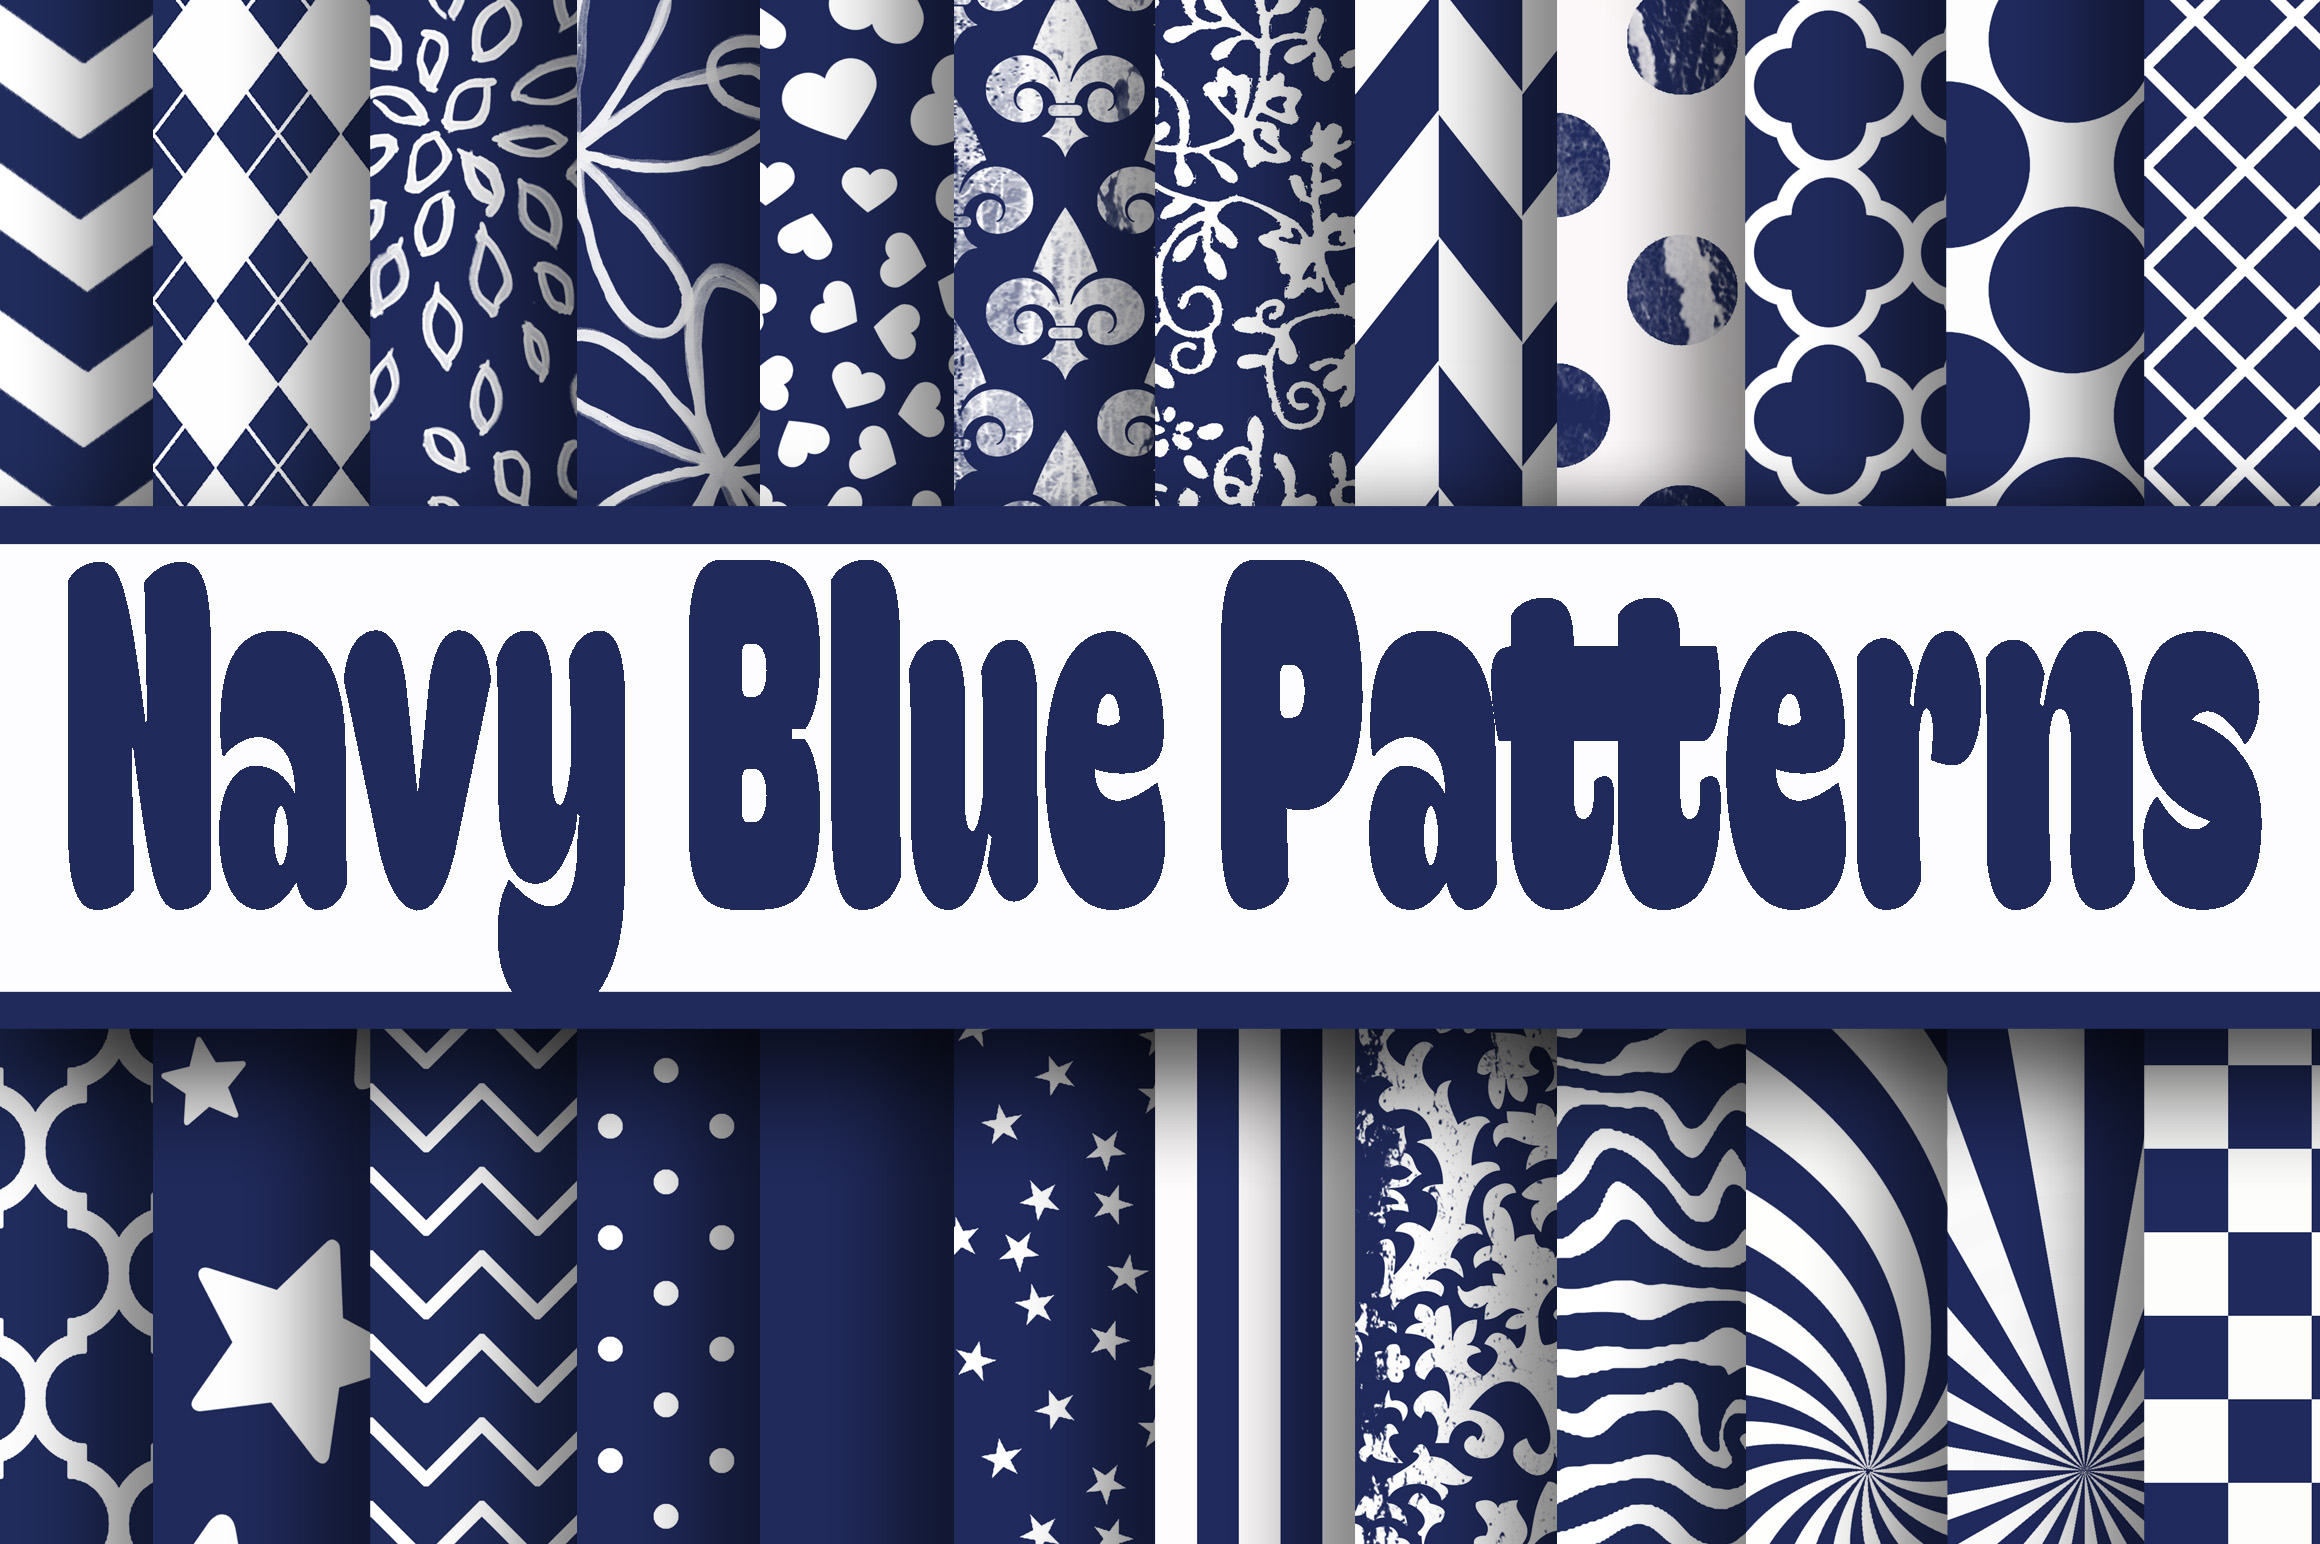 Navy Blue Patterns Digital Paper Gráfico Fondos Por oldmarketdesigns